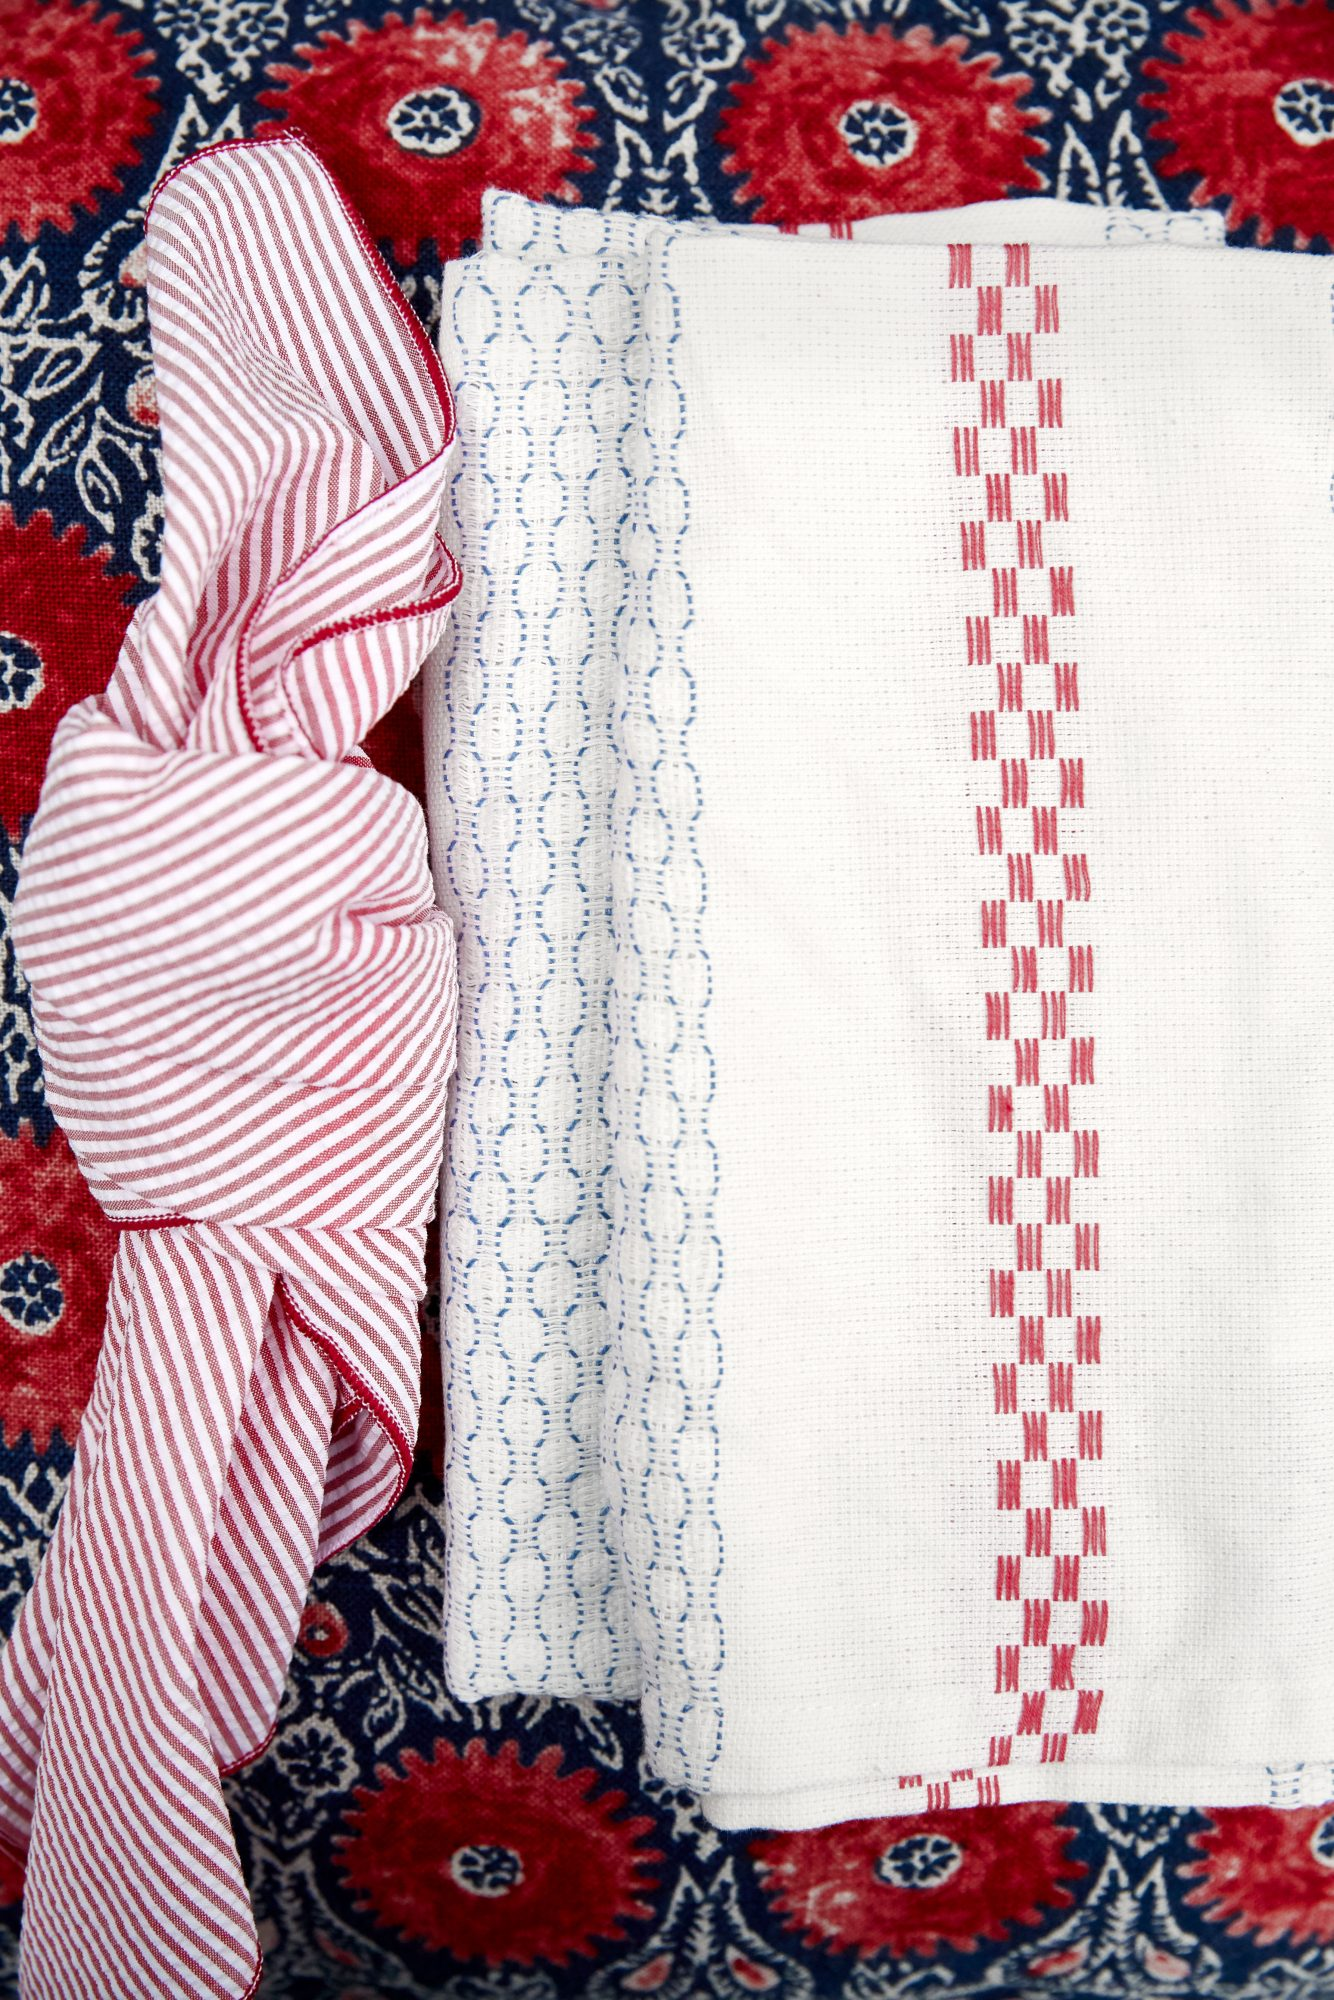 Knotted Napkin for 4th of July Party